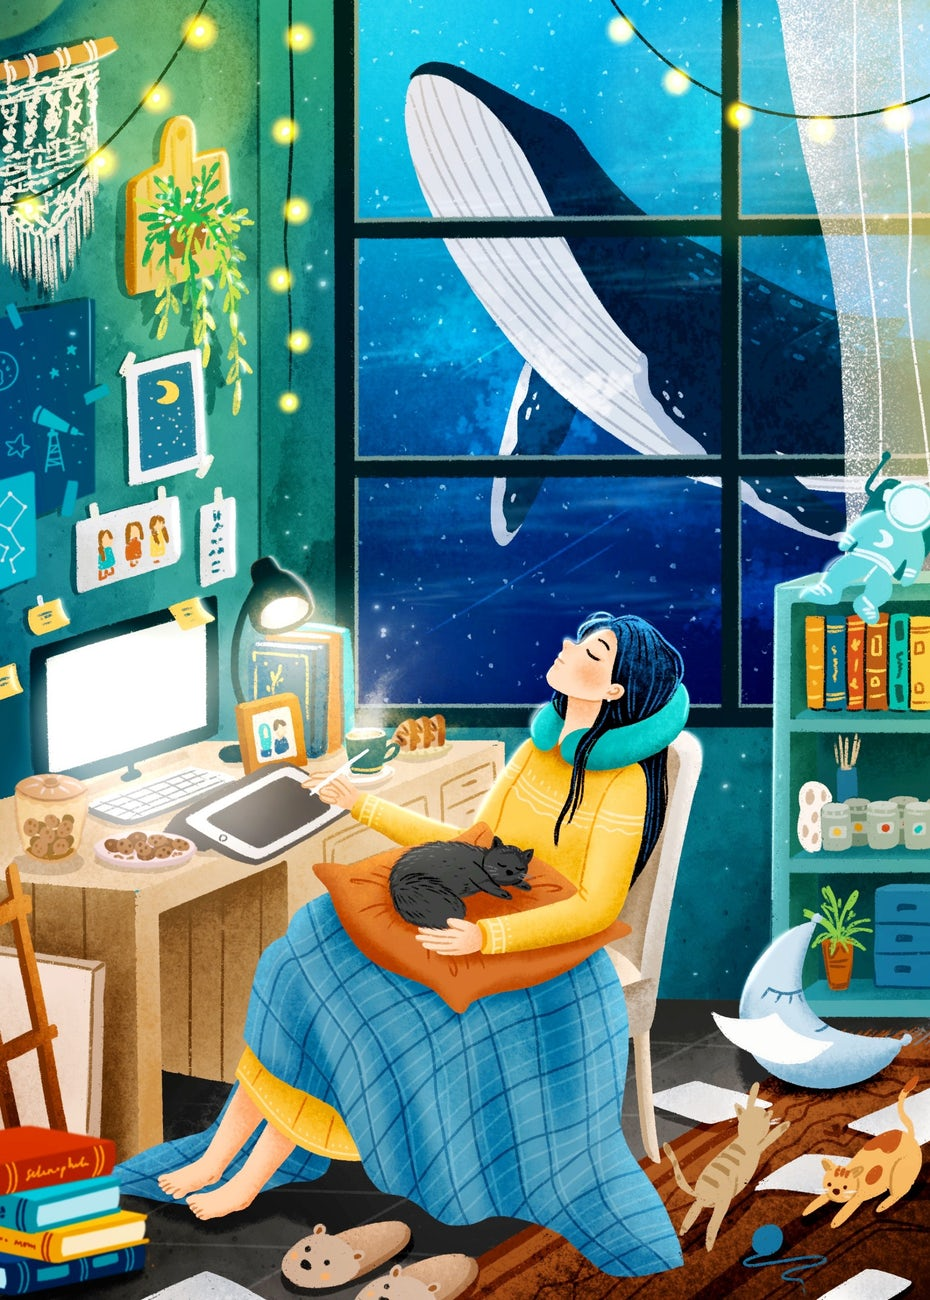 illustration of a woman sitting at a desk, drawing on a tablet while surrounded by objects, cats and a whale through the window